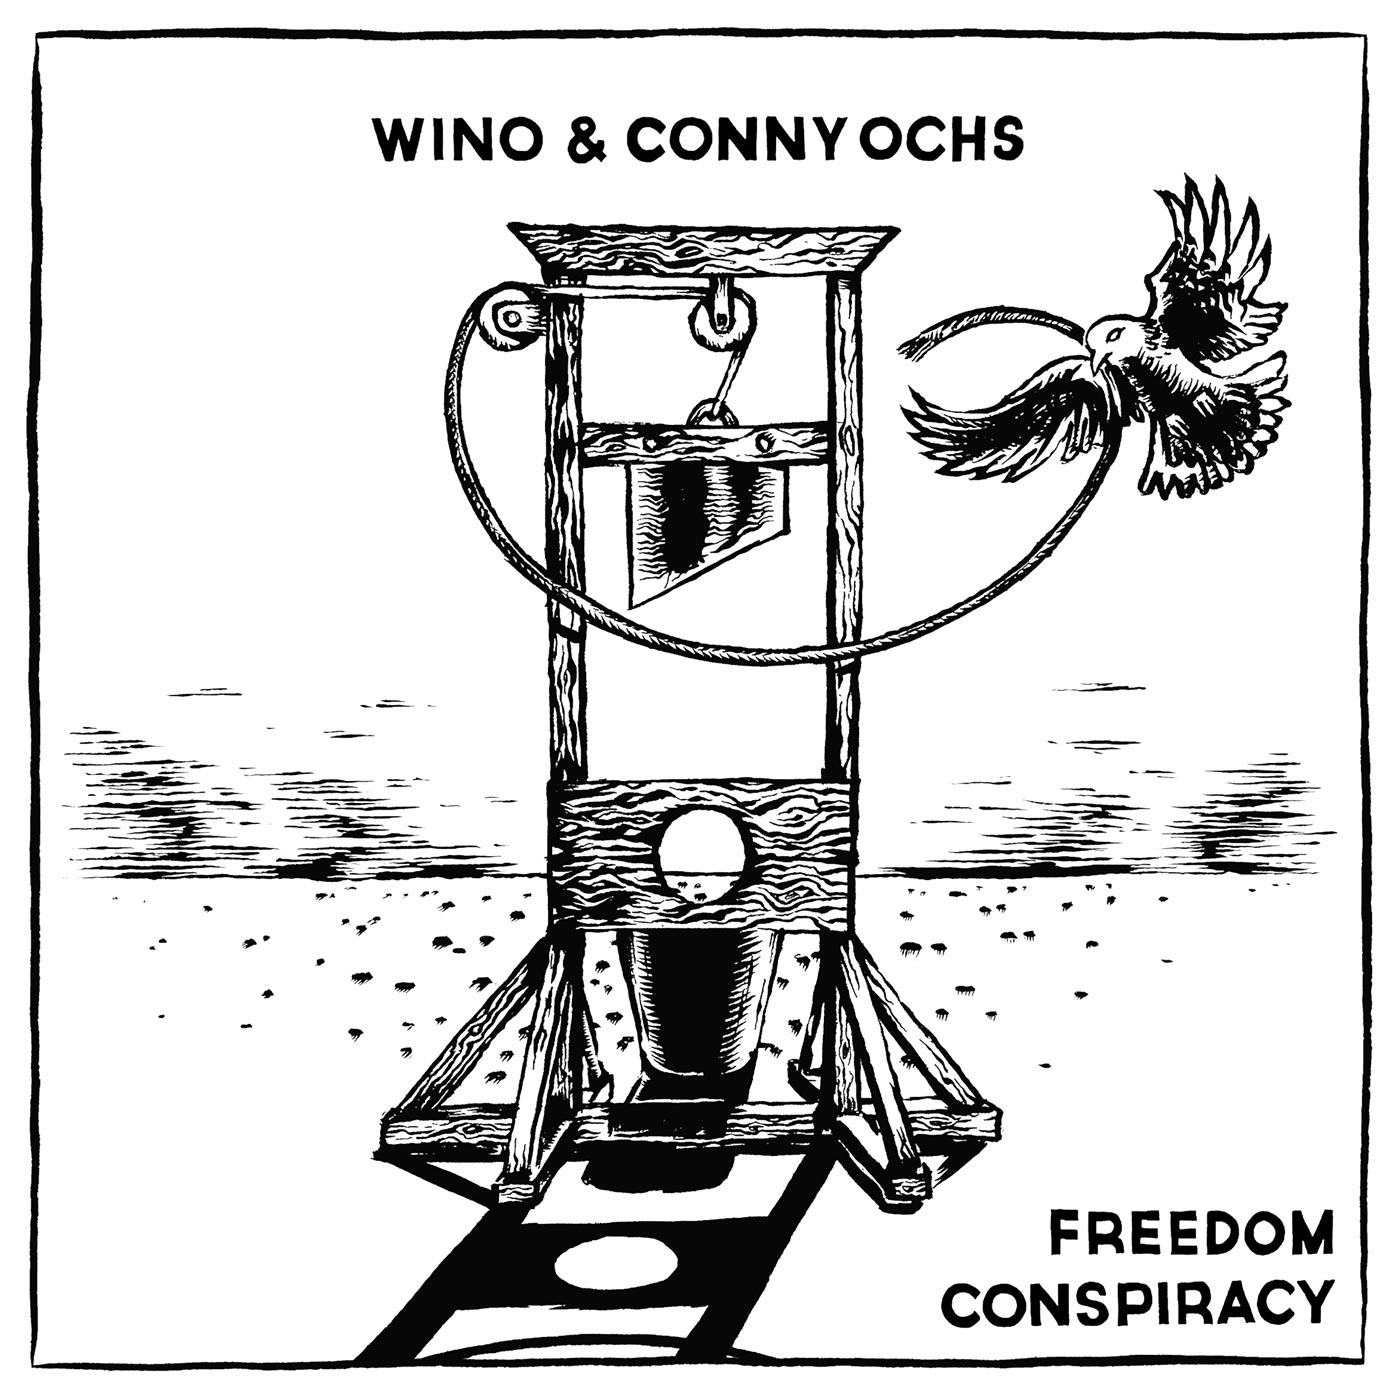 wino-conny-ochs-freedom-conspiracy